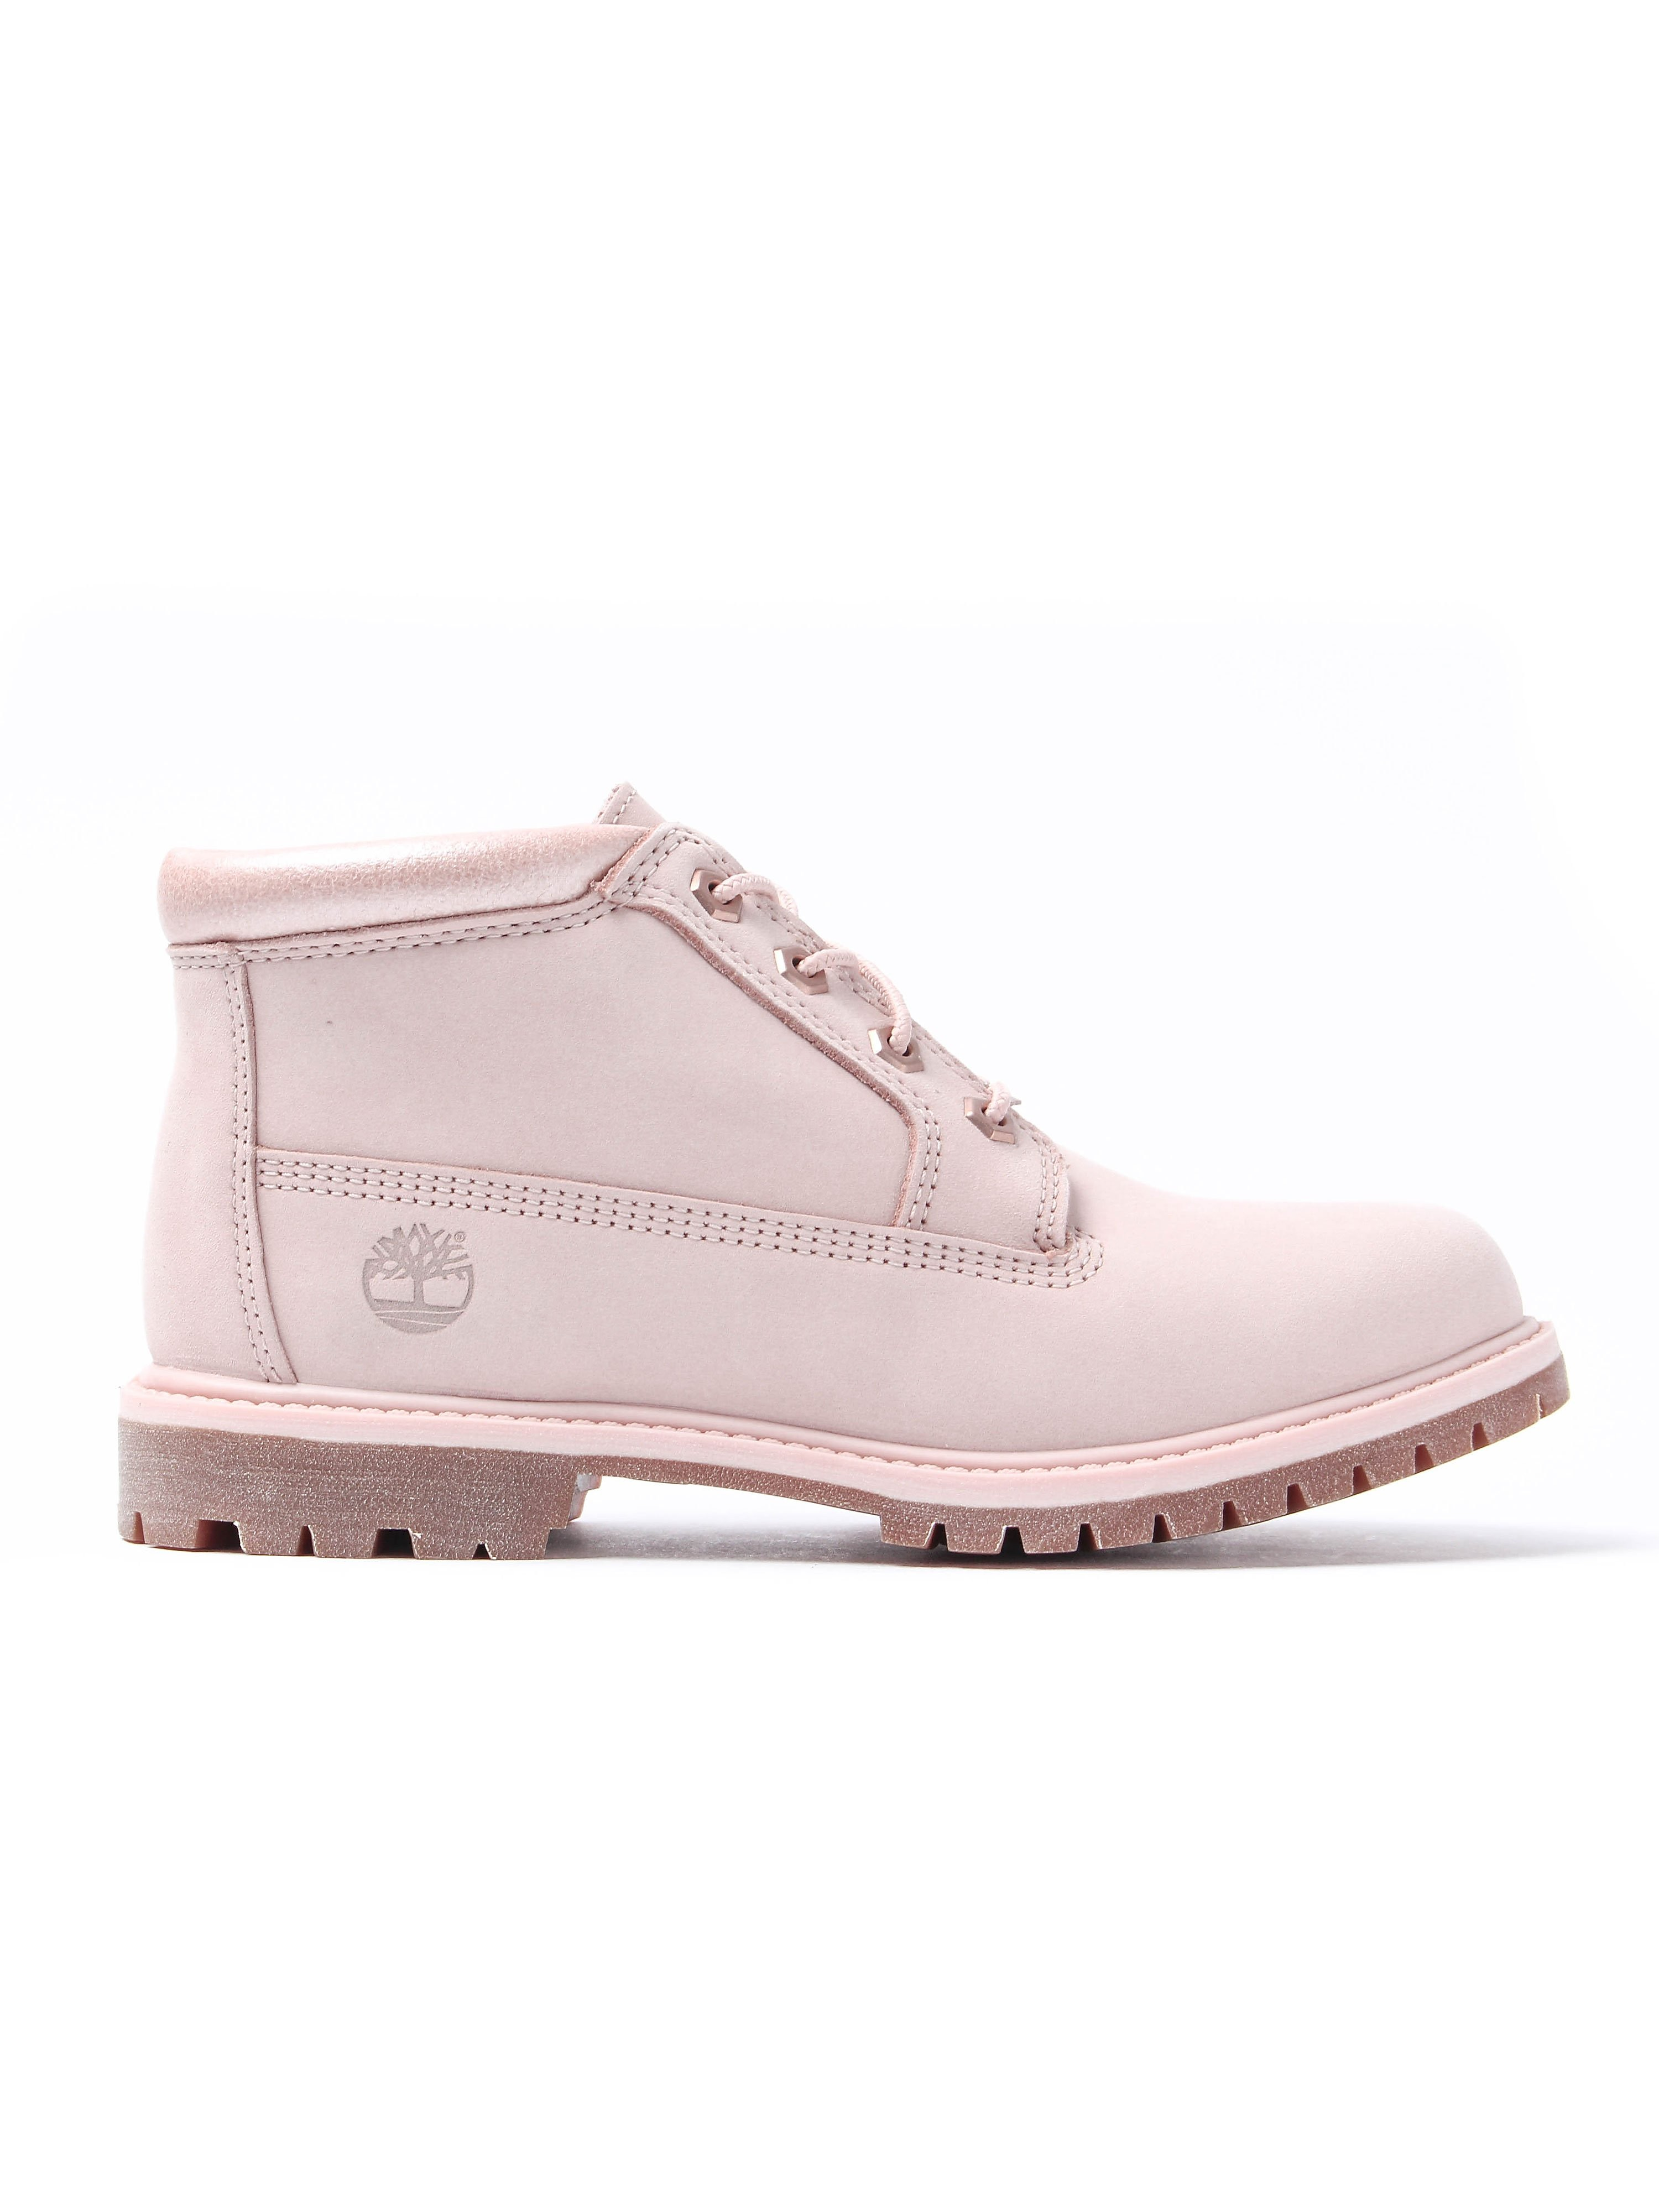 Timberland Women's Nellie Chukka Boots - Cameo Rose